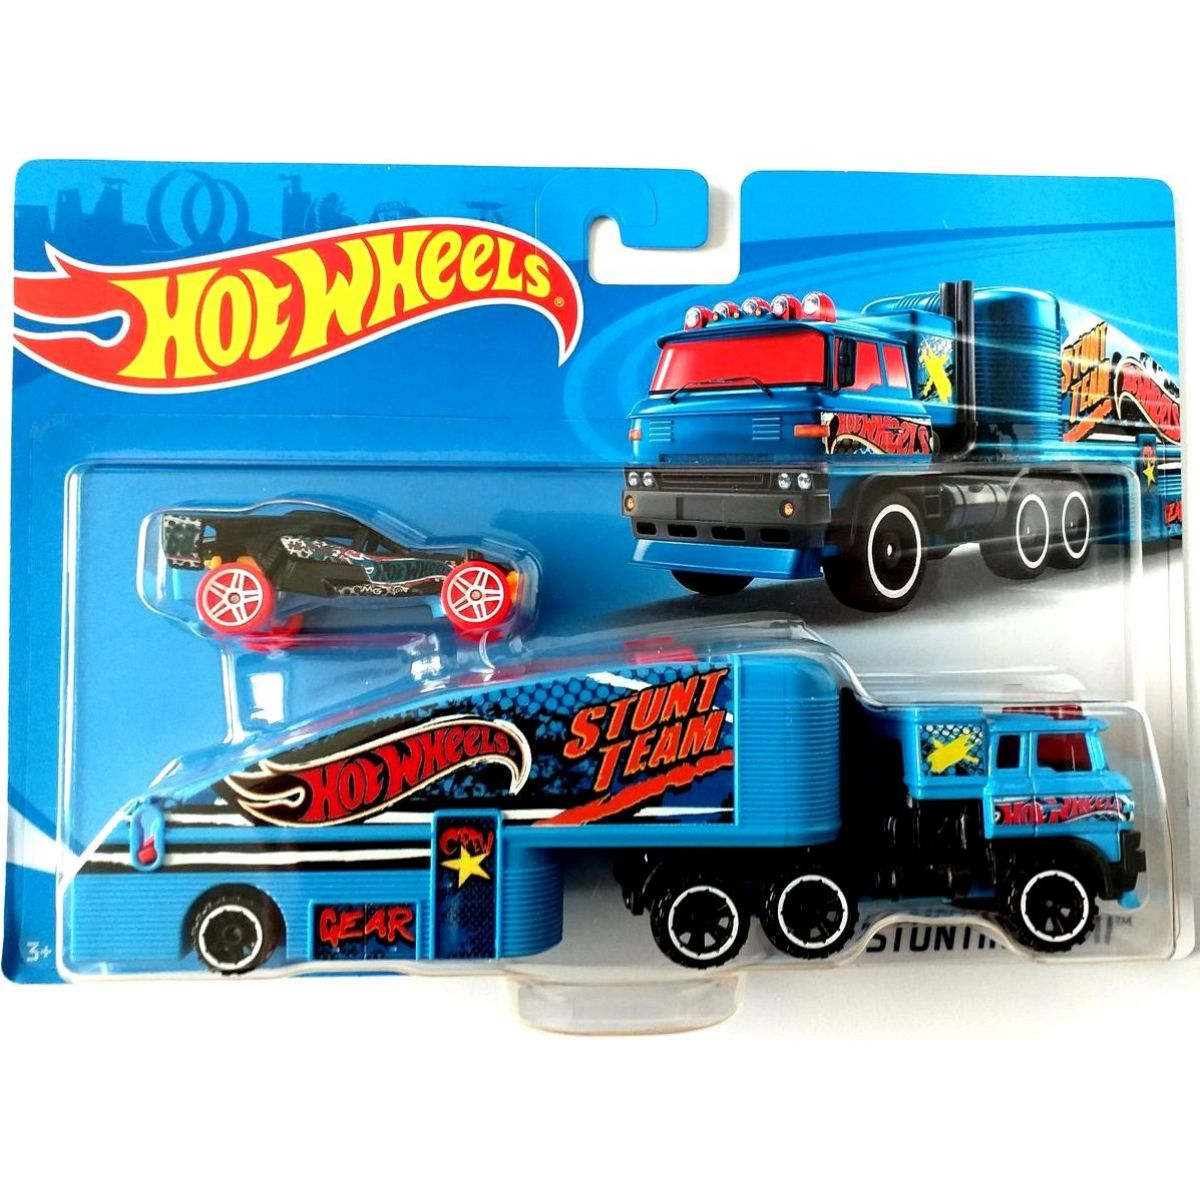 Hot Wheels náklaďák Stuntin Semi